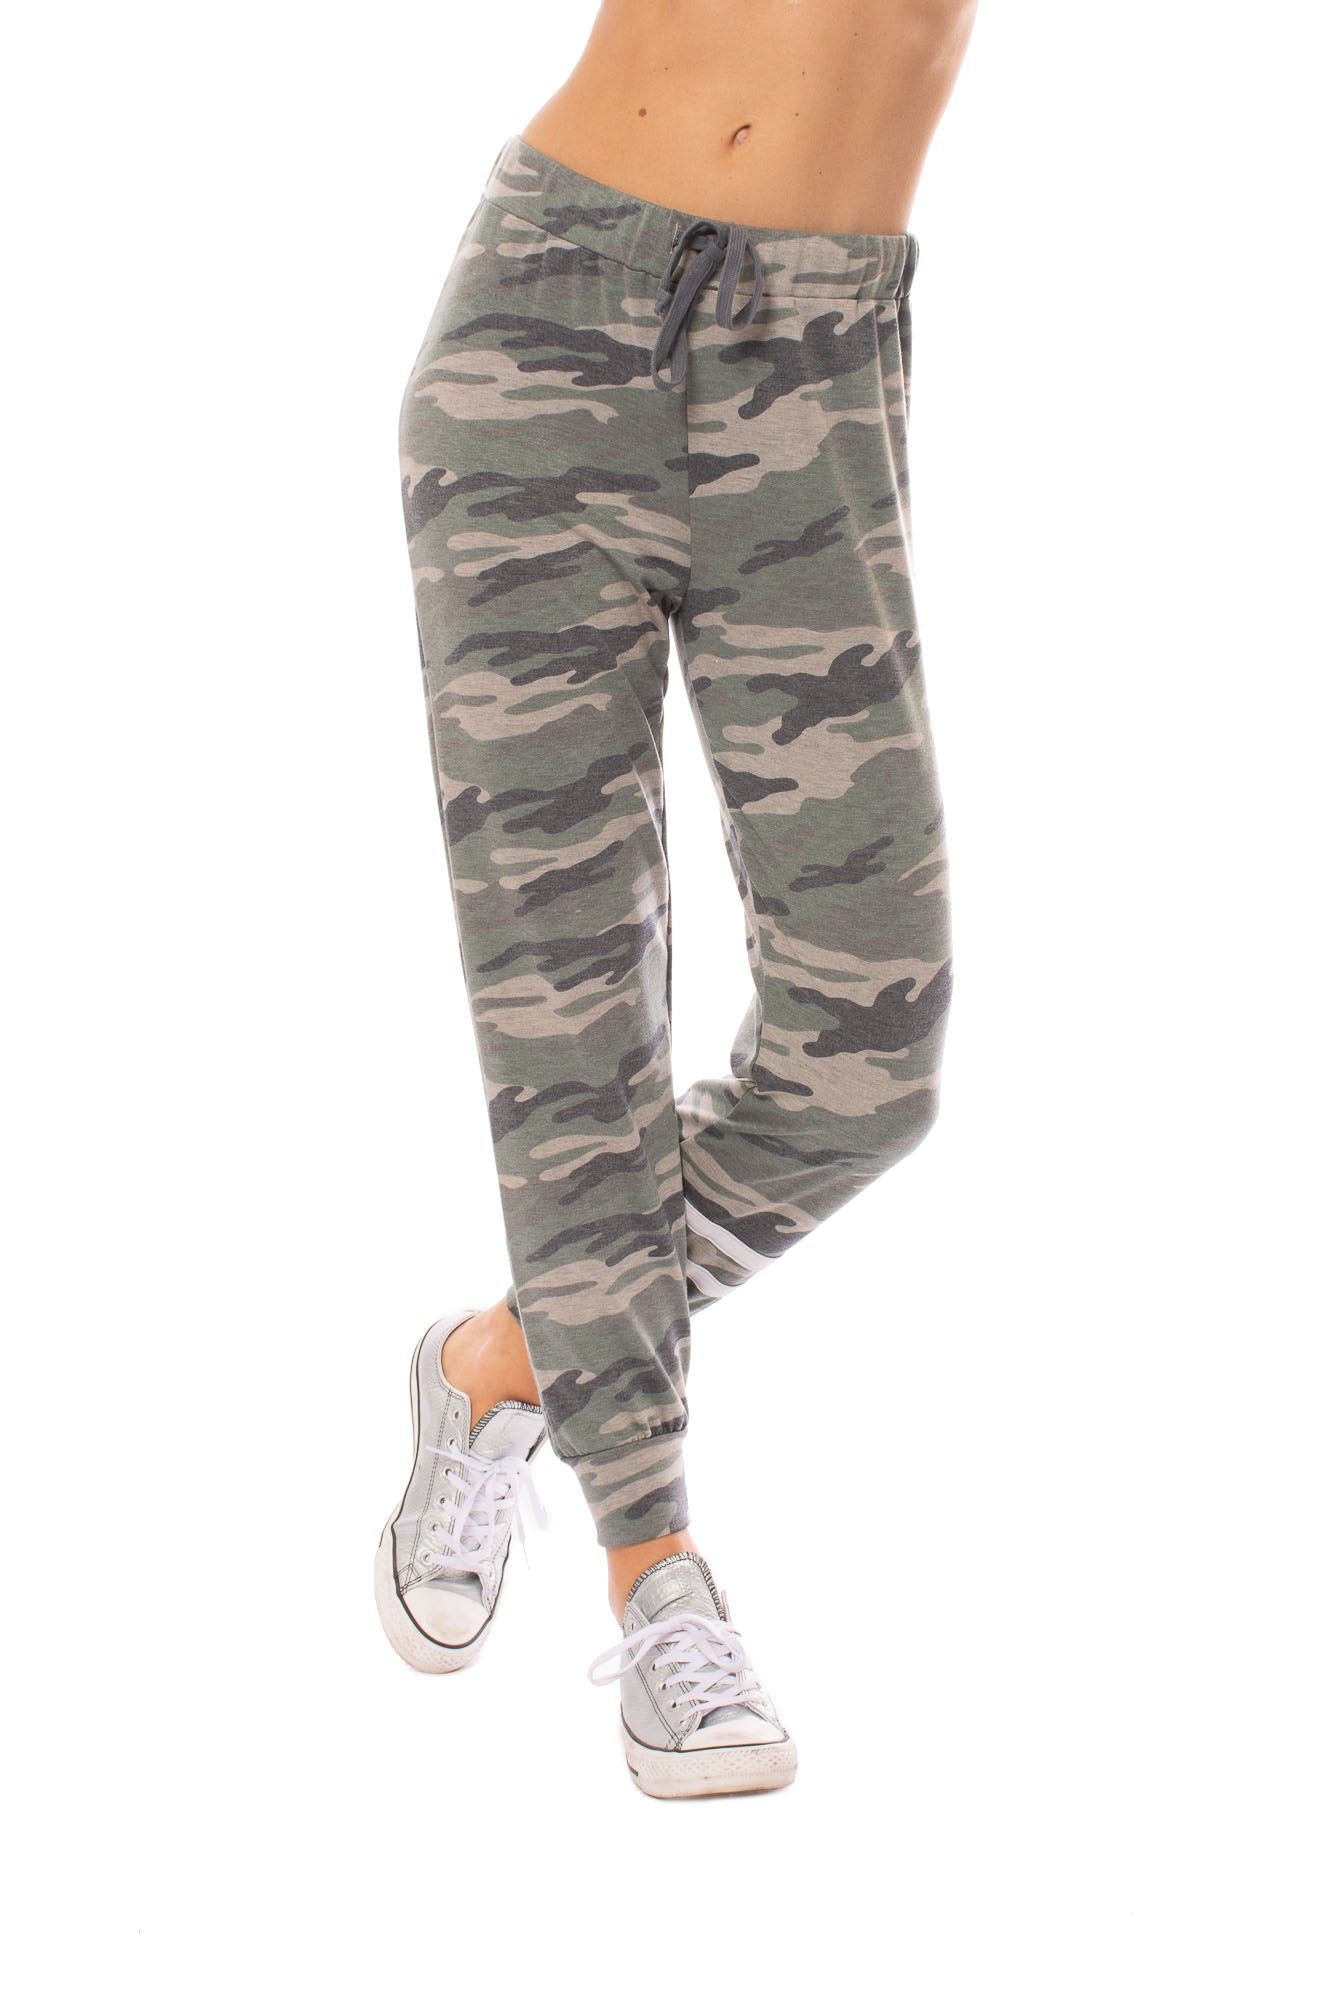 LA Made - Camo Joggers (CAMF2000, Light Green Camo)